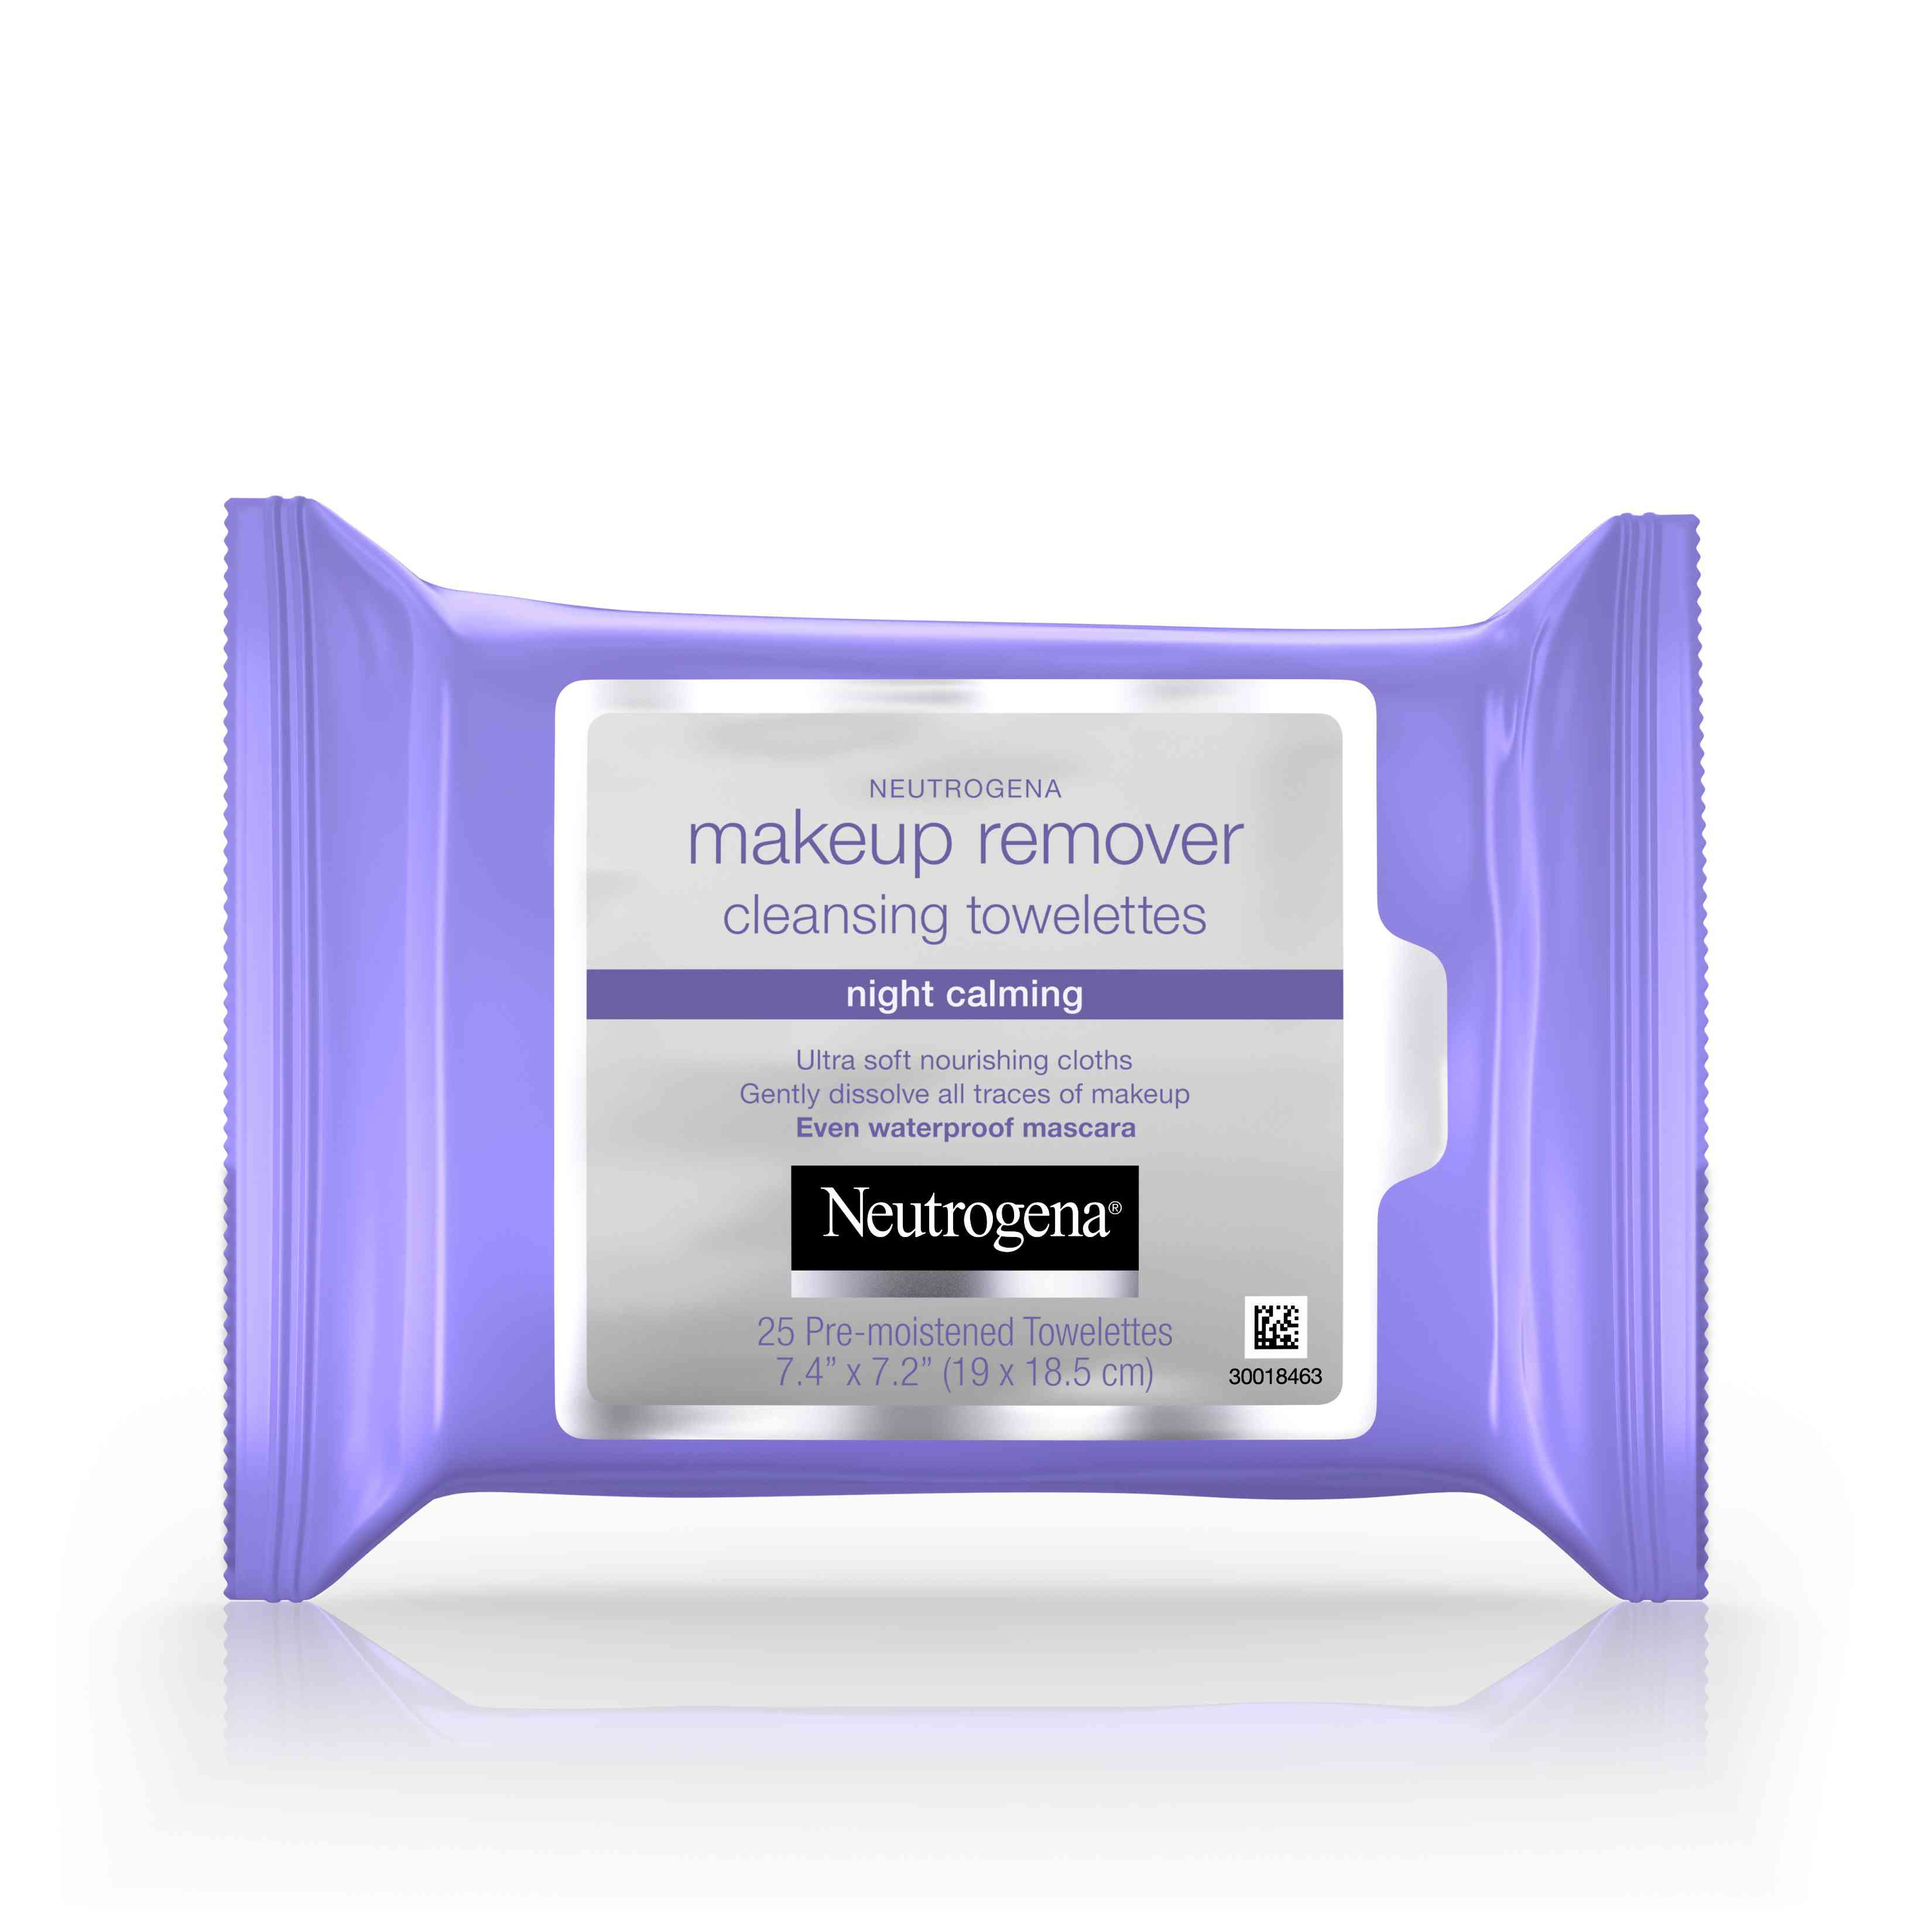 Neutrogena Makeup Remover Cleansing Towelettes & Wipes Night Calming